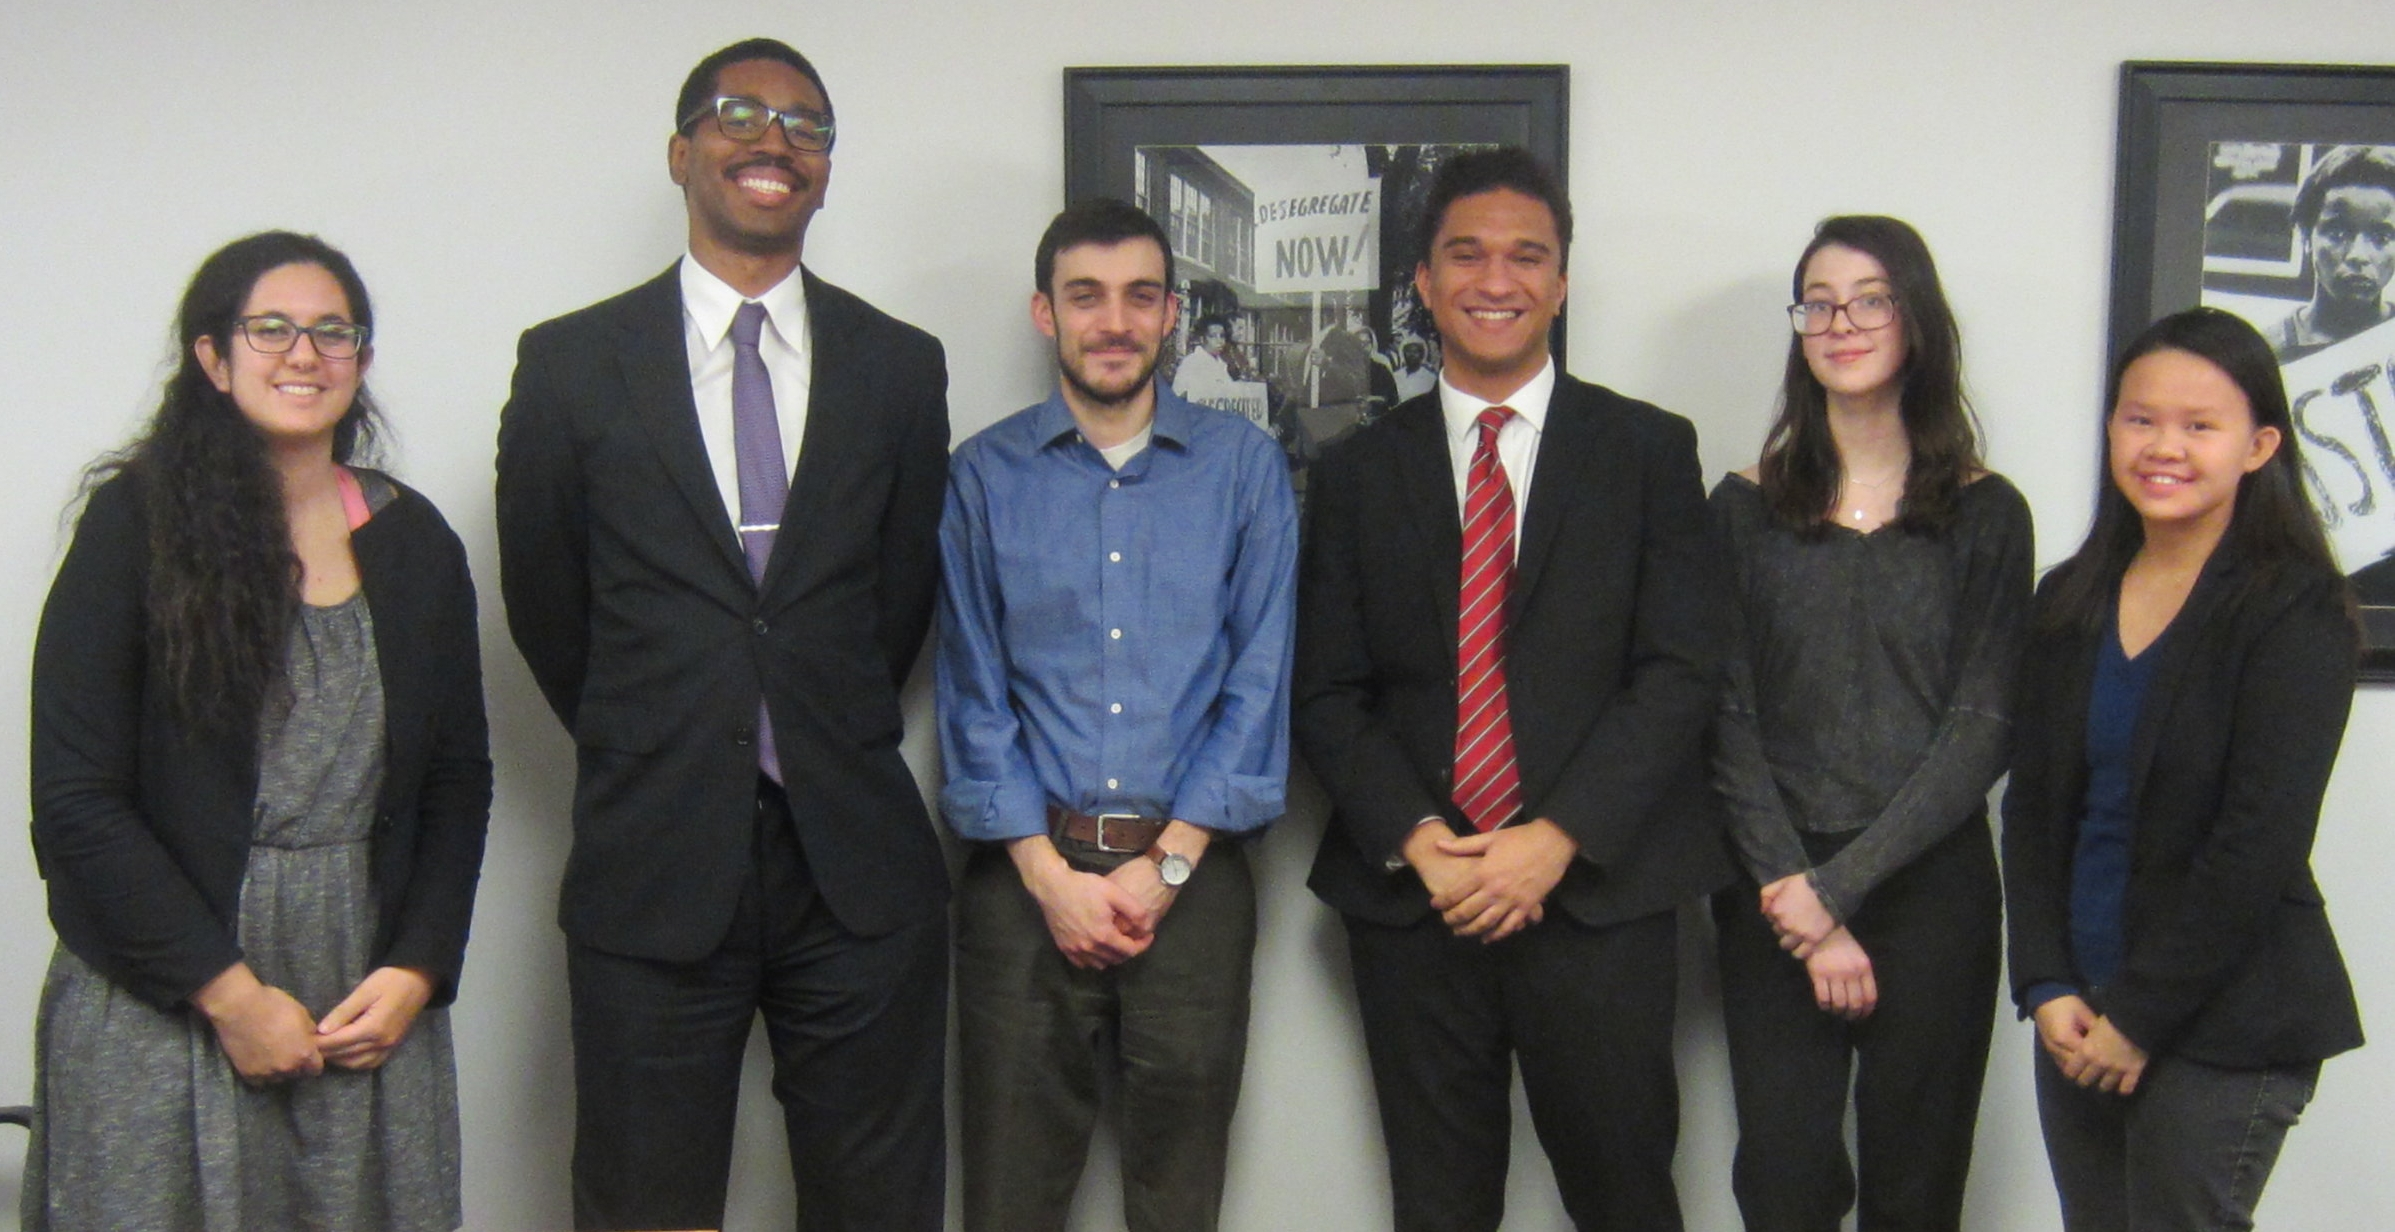 From left to right: Alexandria Boutros,Louis Bedford, Adam Cohen,Damian Richardson,Bailey Fox, and Amy Tan.